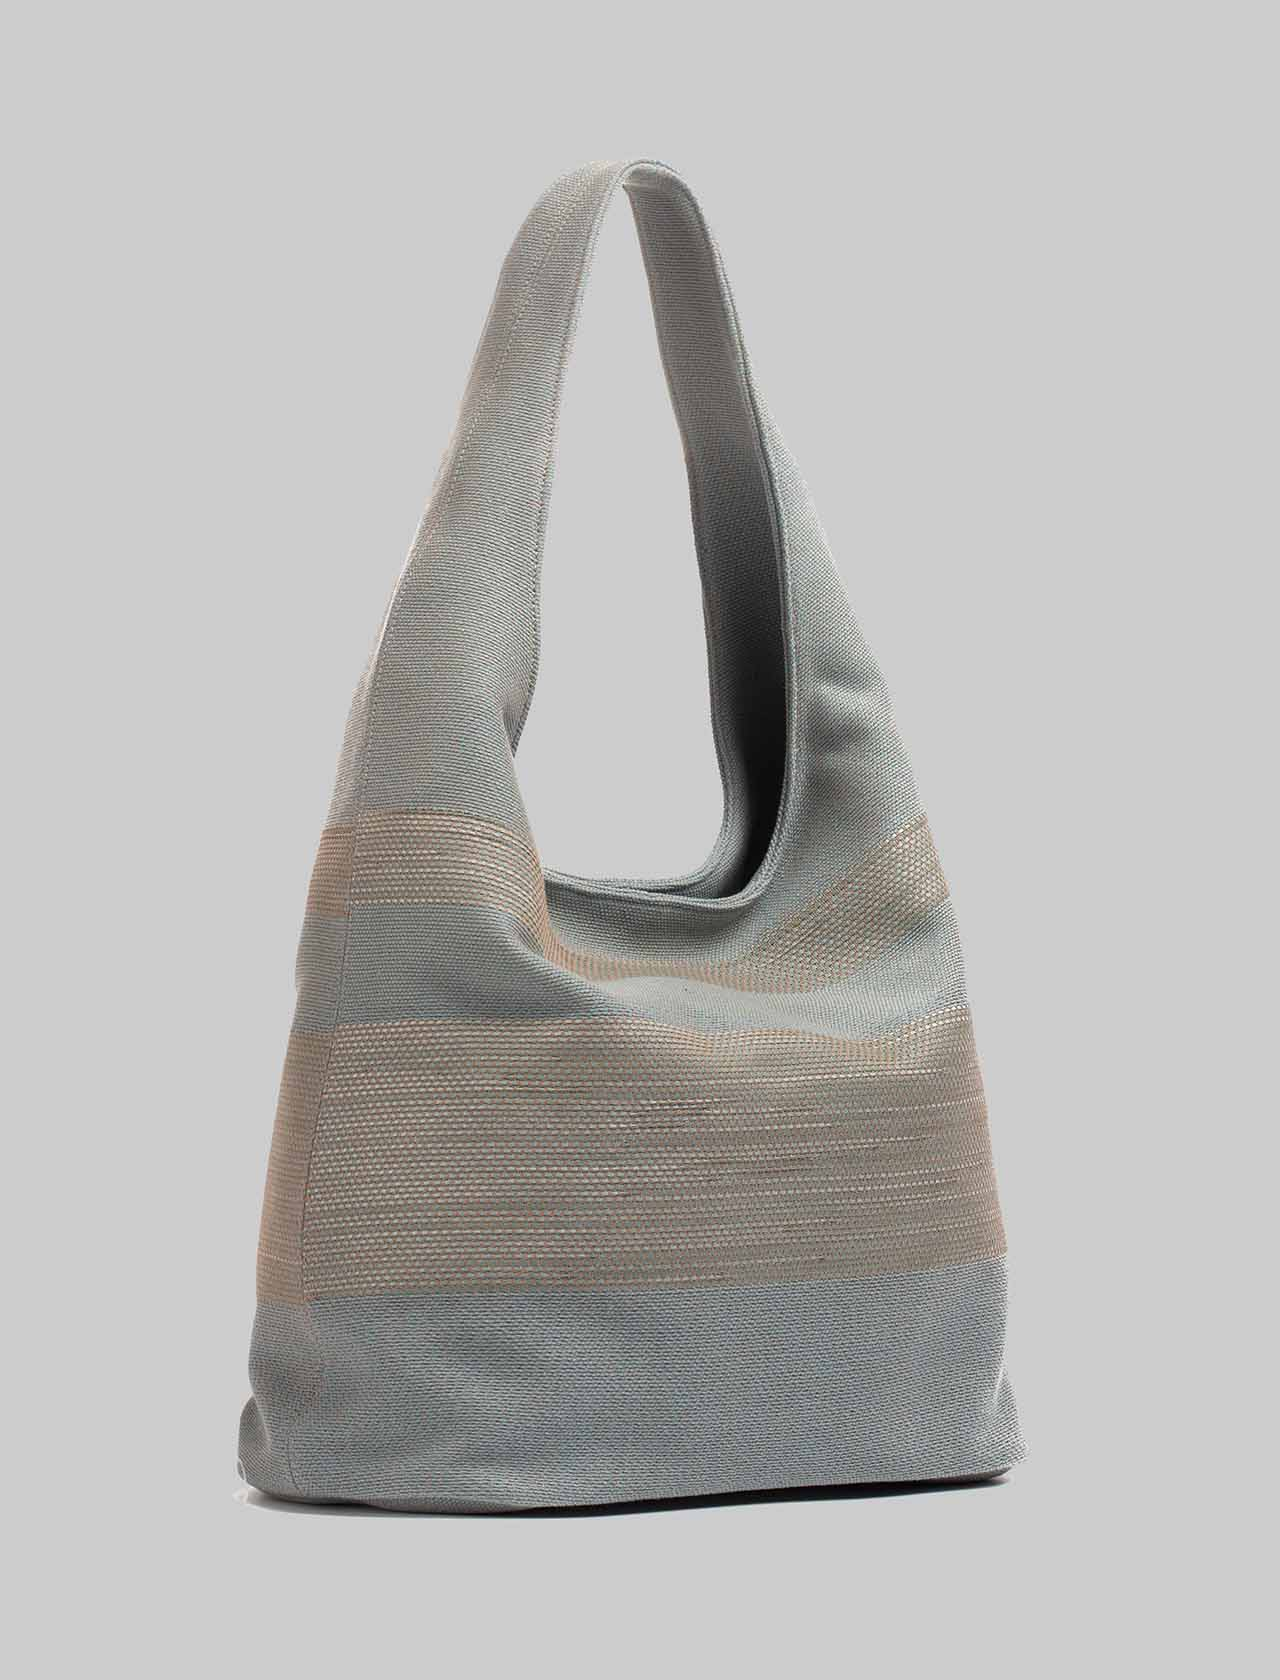 Woman Shoulder Bag in Denim Color Fabric and Magnet Closure Unisa | Bags and backpacks | ZISOLTE026